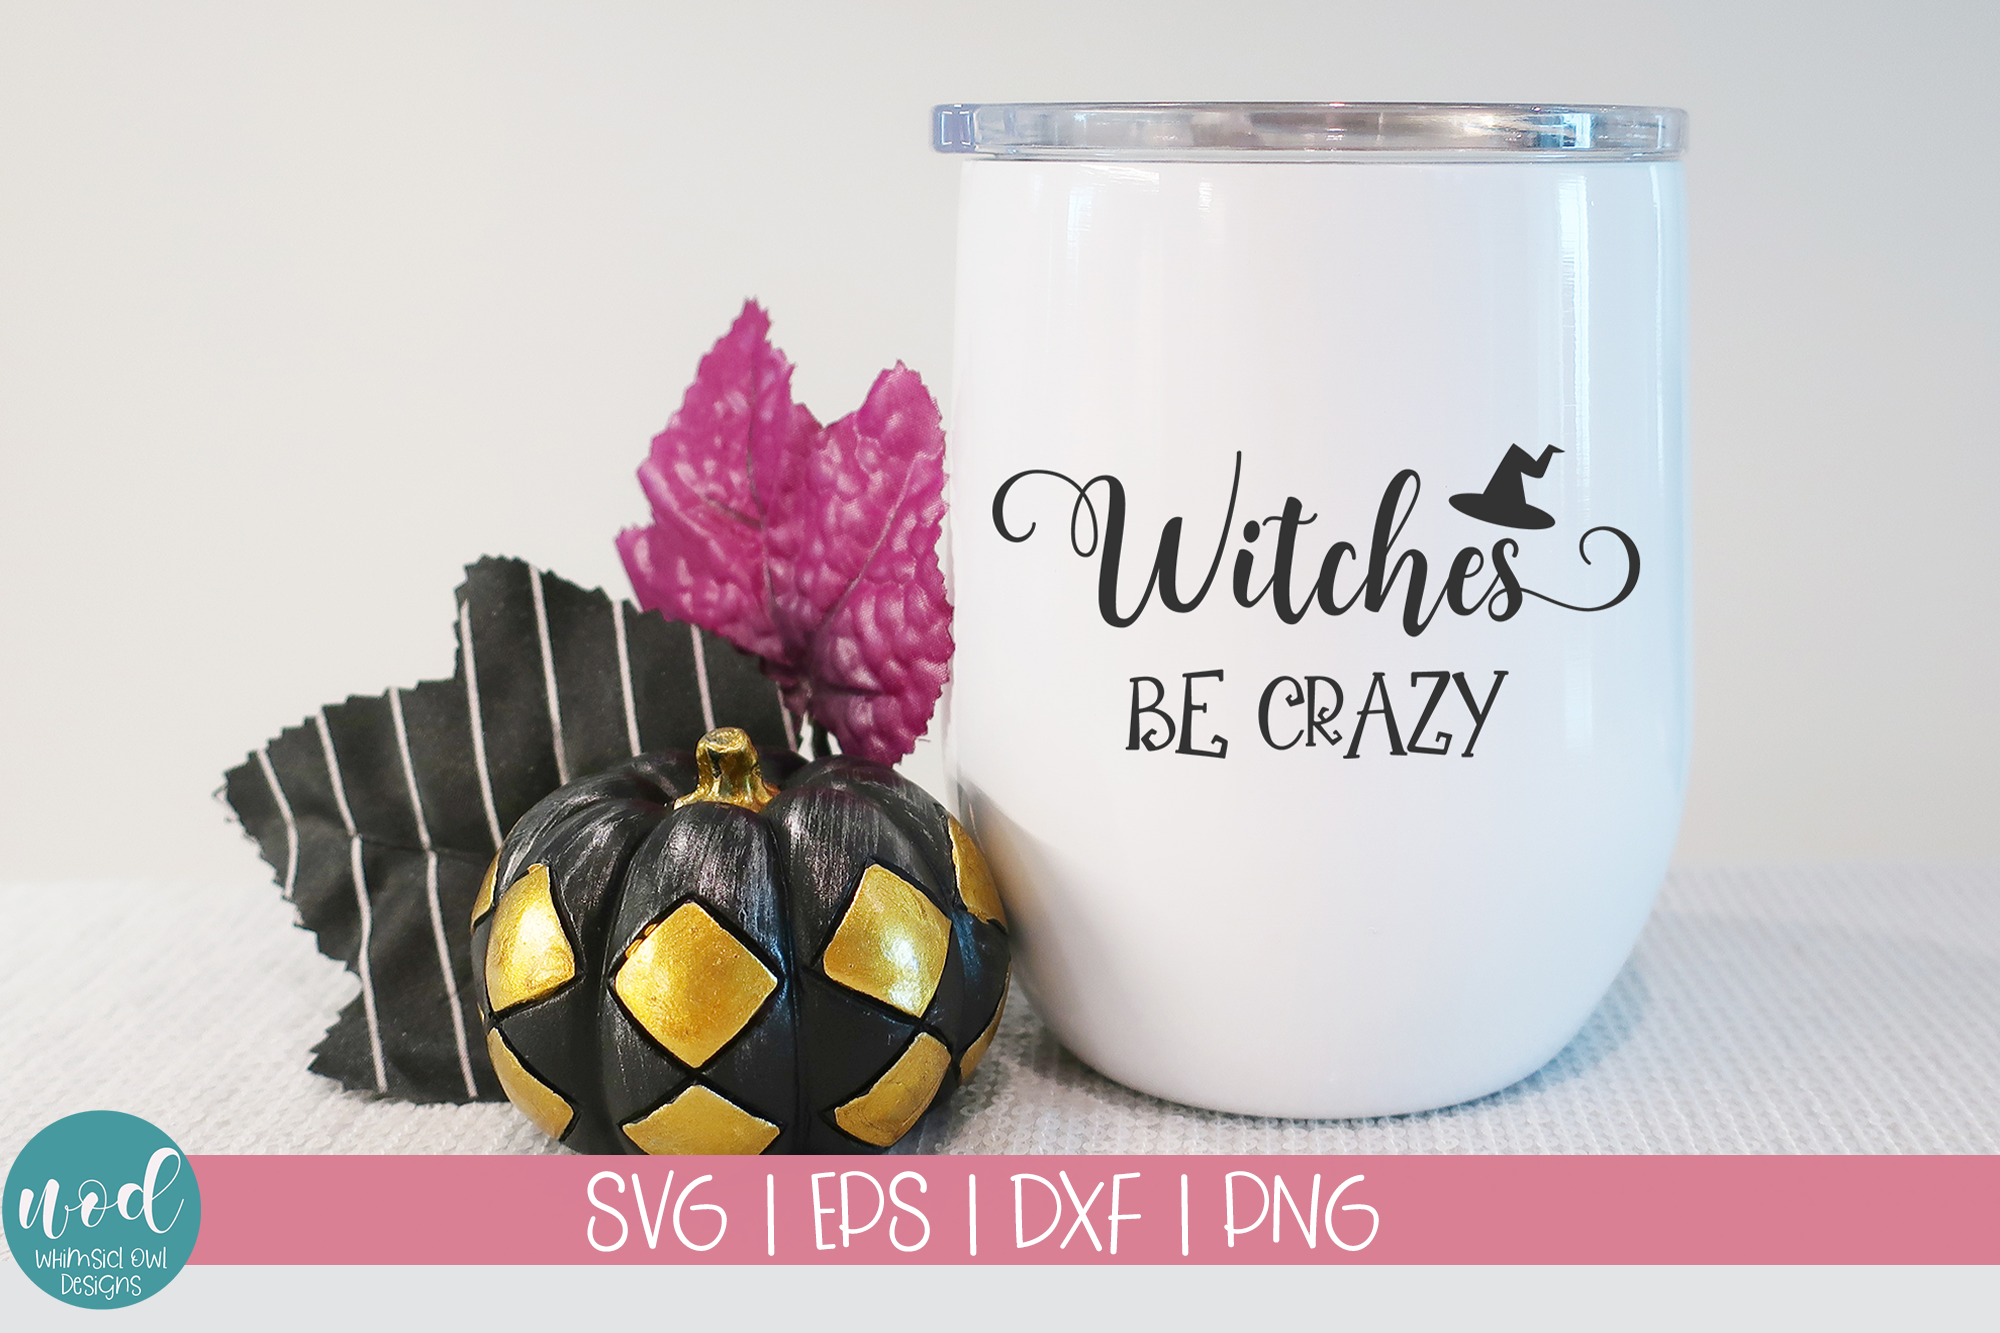 Witches Be Crazy SVG File example image 2